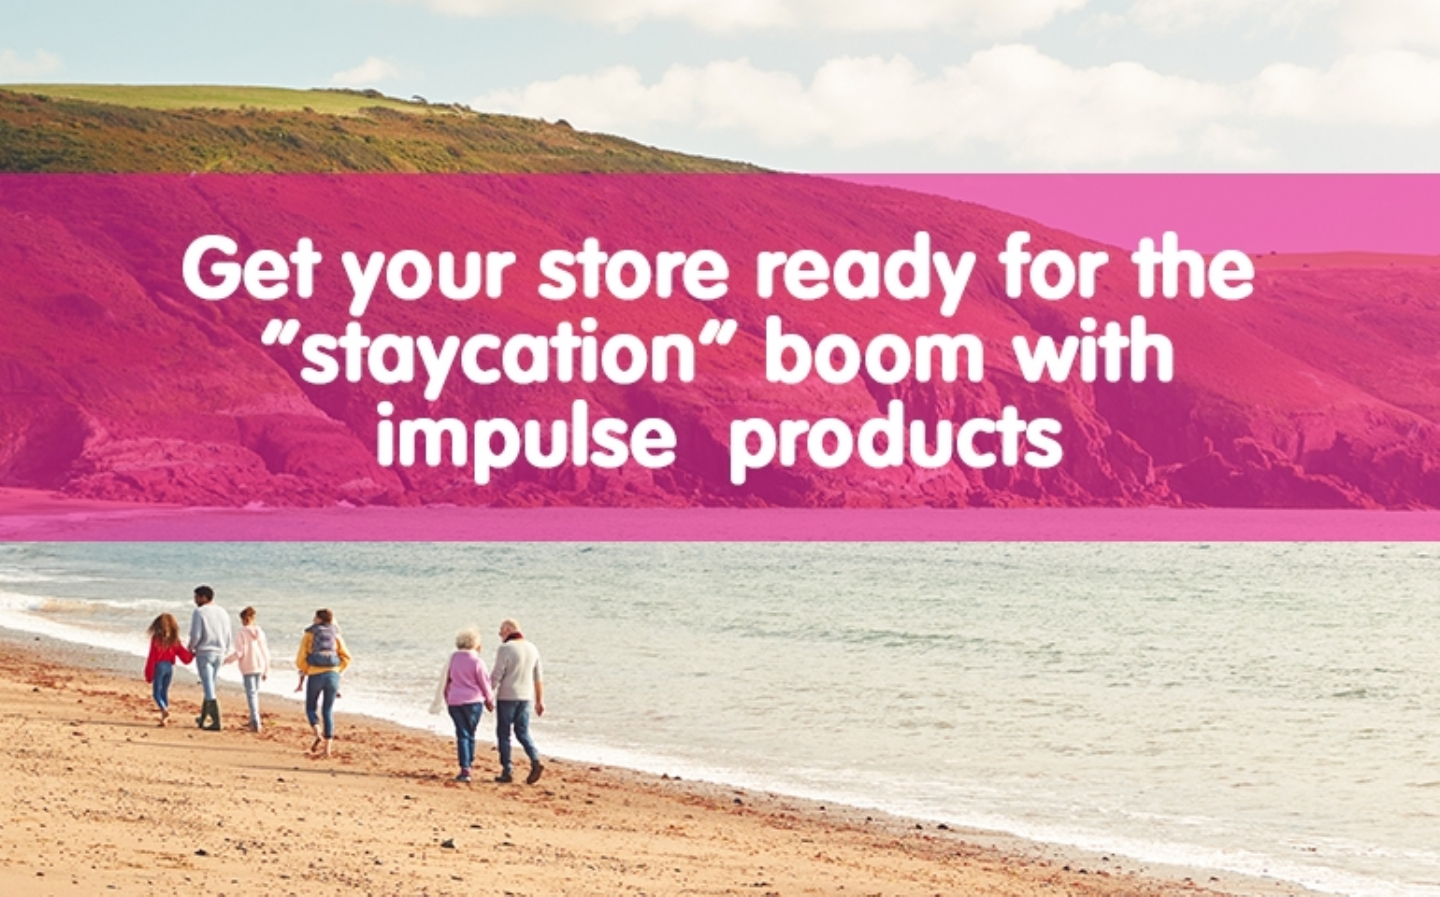 Get ready for the staycation boom with impulse products